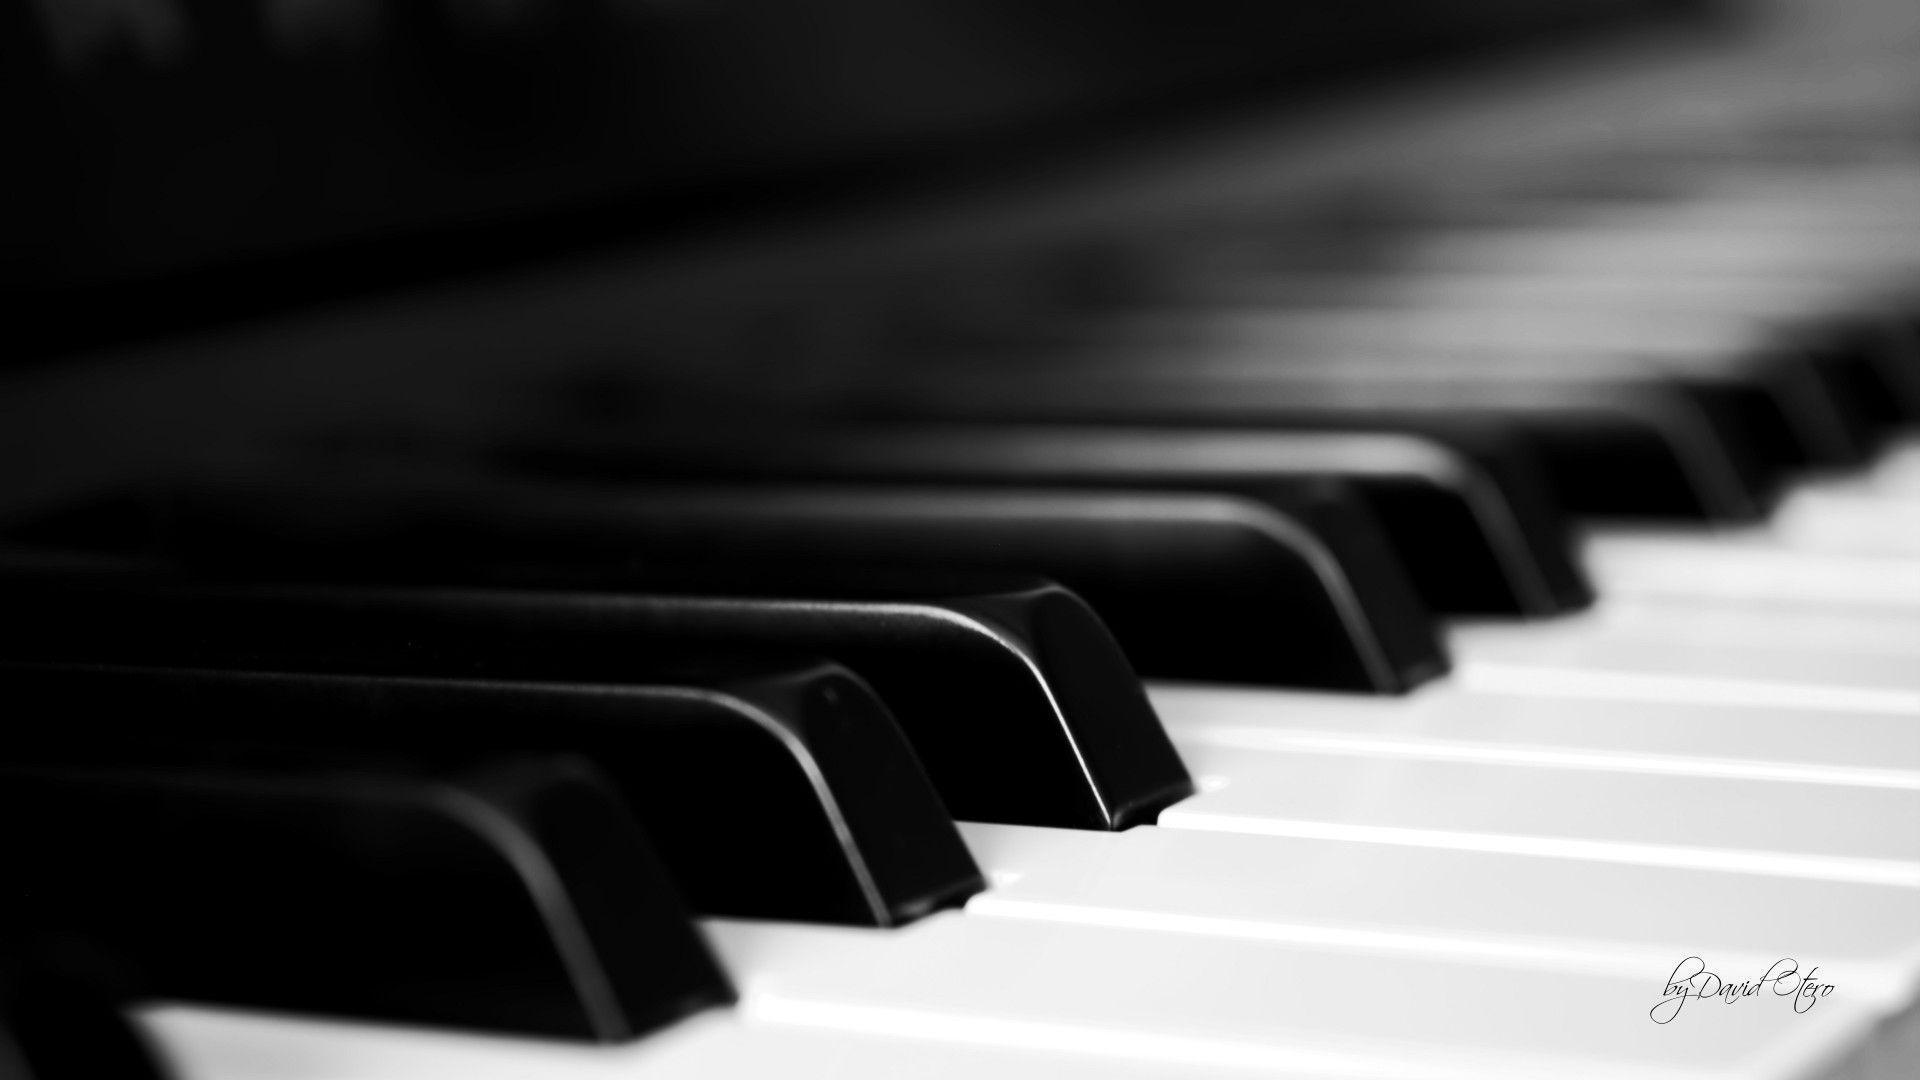 Wallpapers For > Awesome Piano Wallpapers